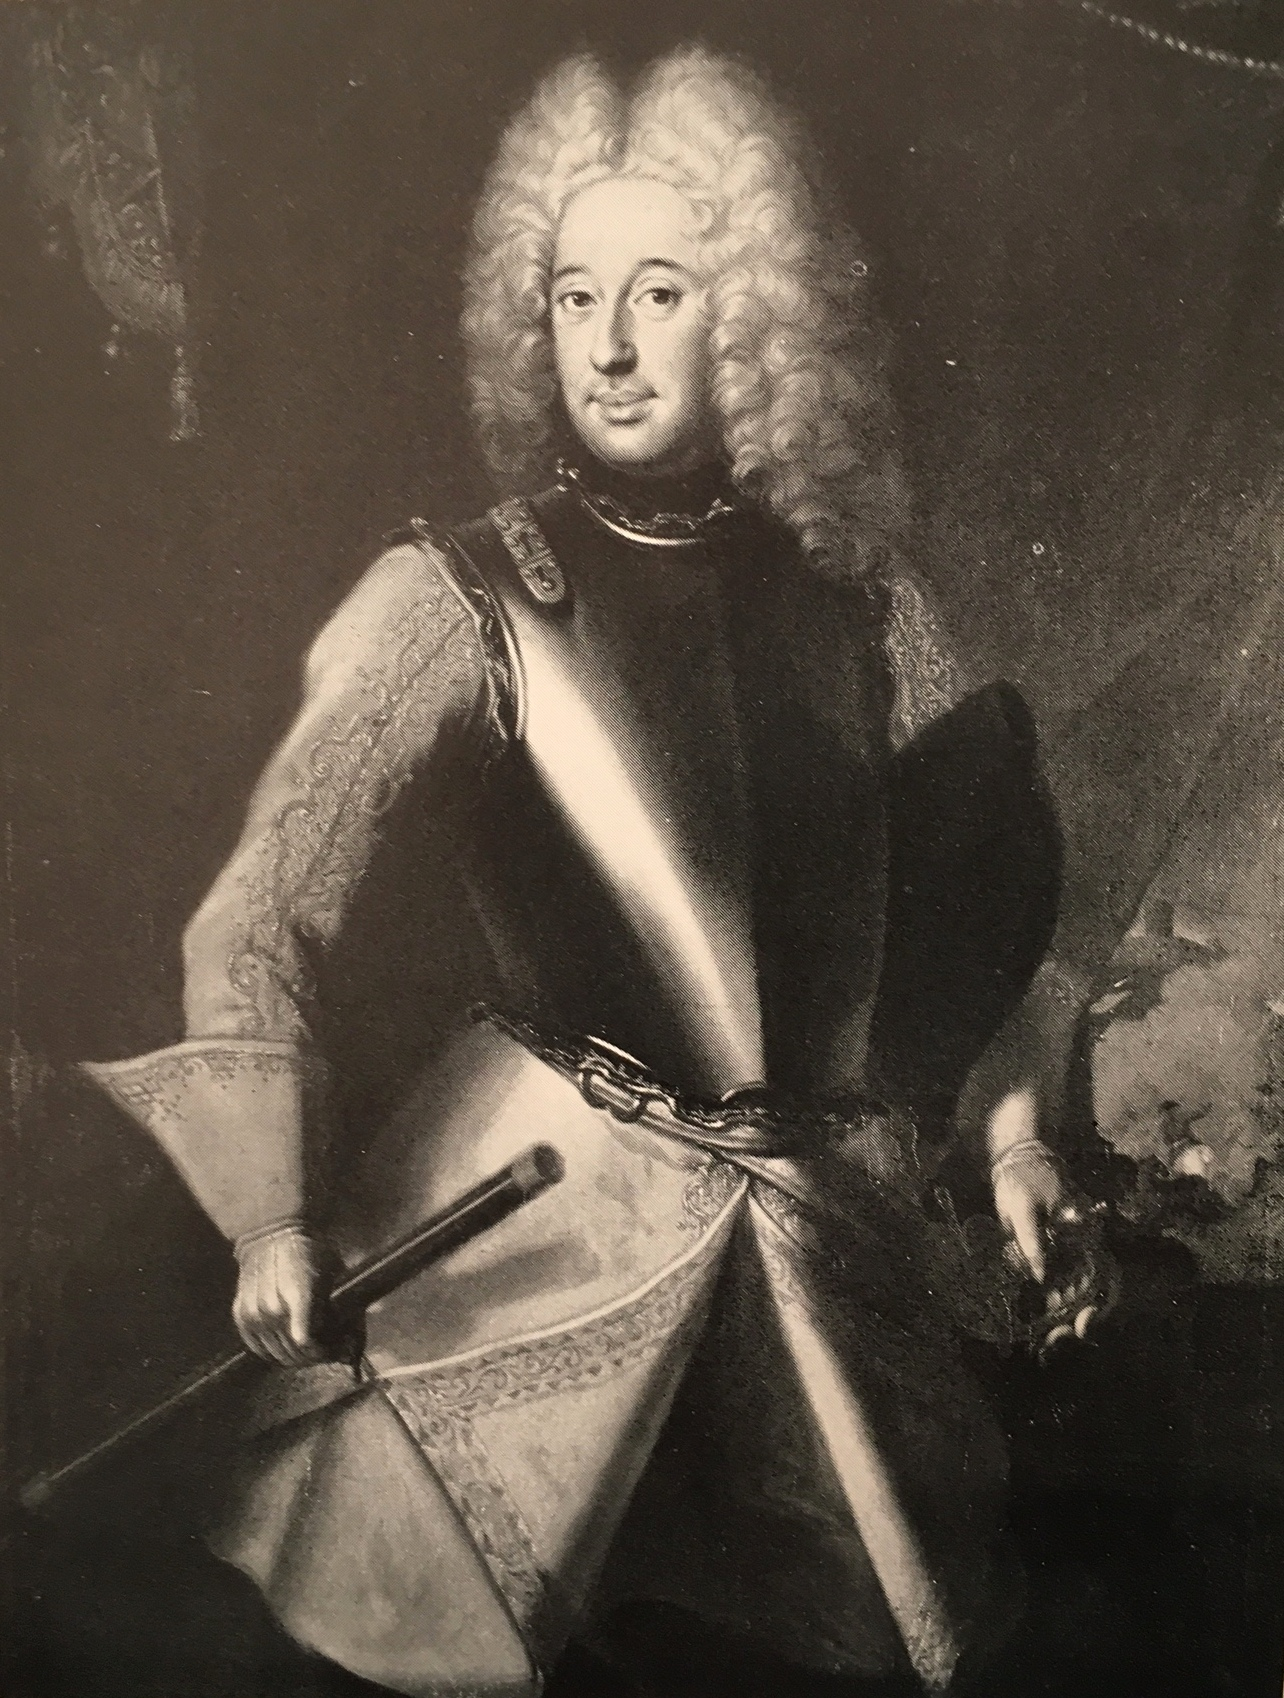 Sweden's generalissimus Frederick of Hesse, the later Frederick I of Sweden.